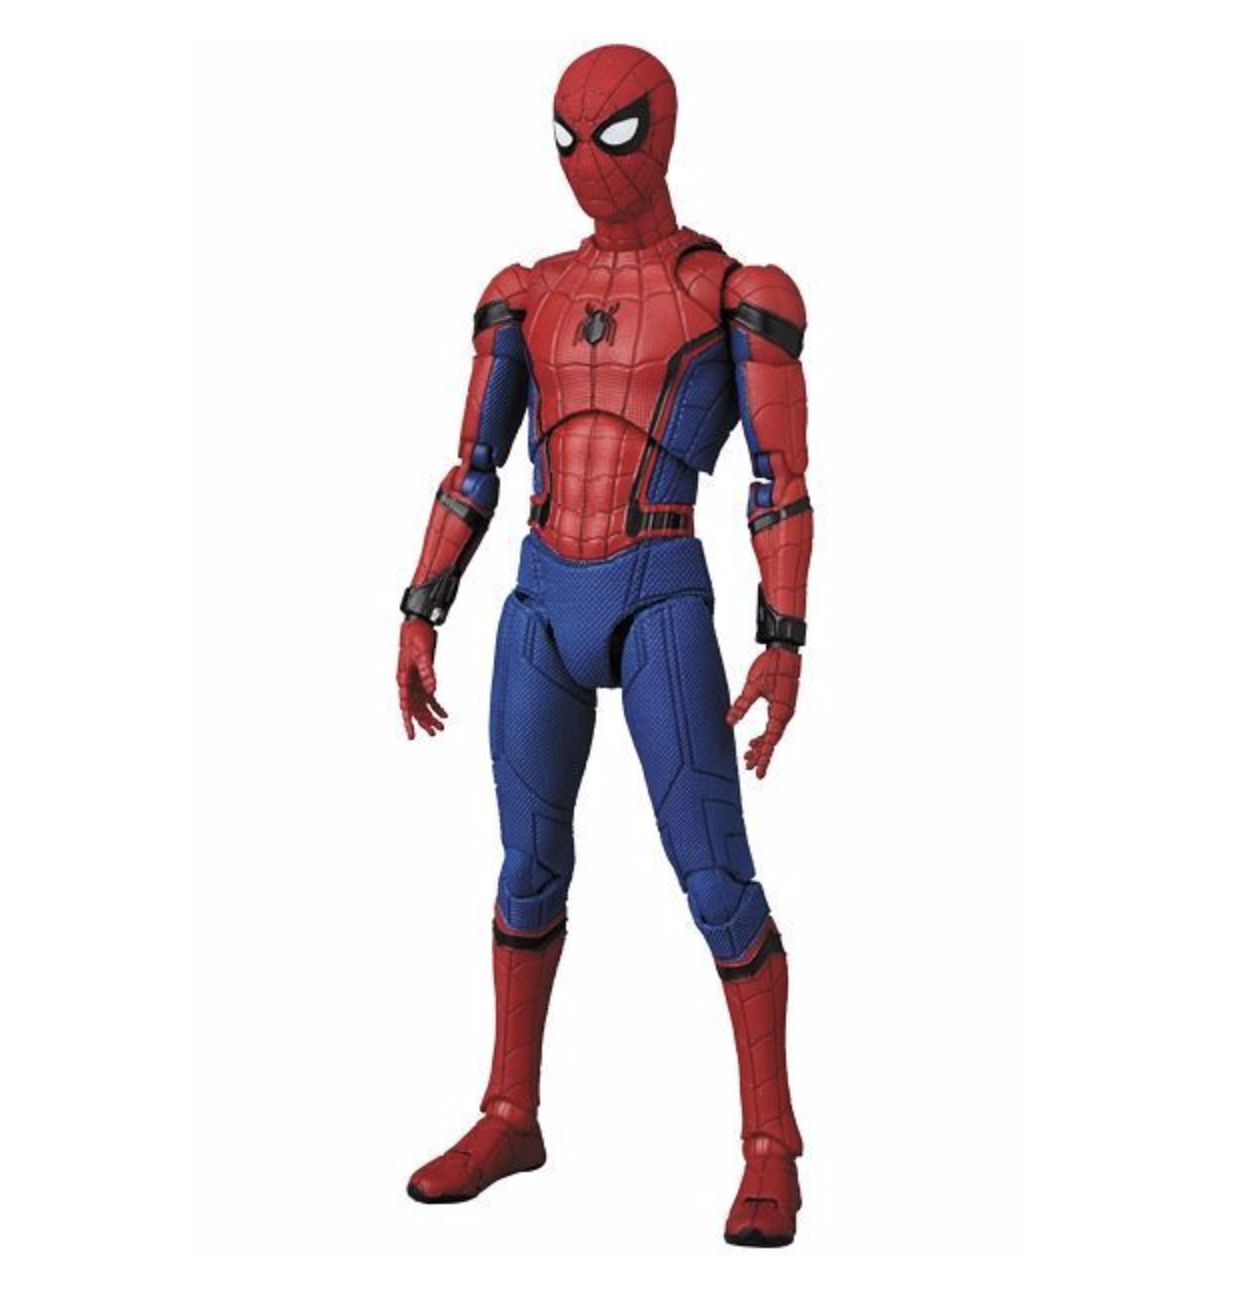 MAFEX Spider-man No. 103 (Homecoming Ver. 1.5)